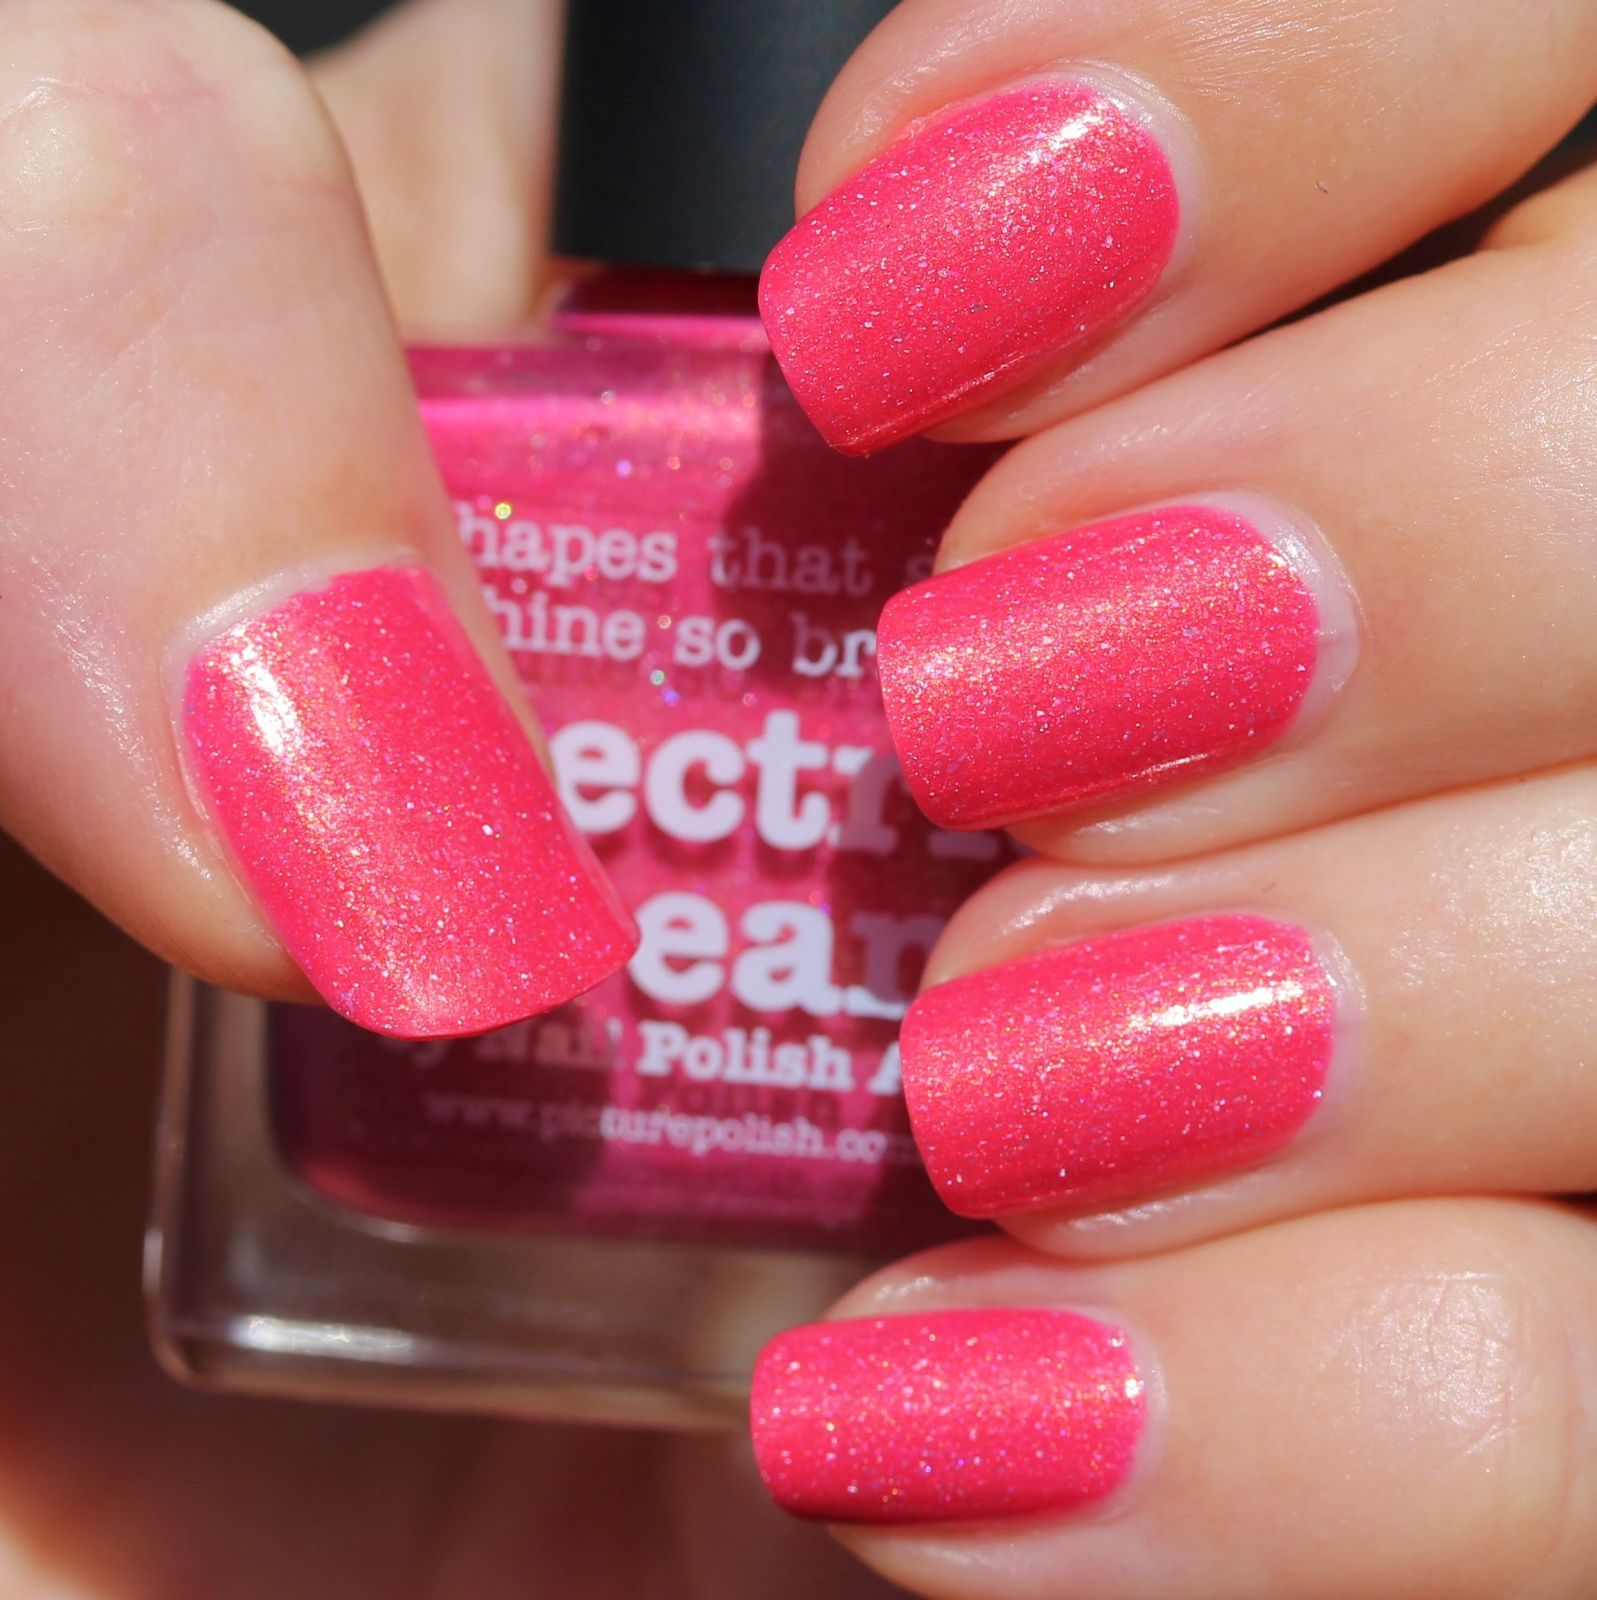 Essie Protein Base Coat / piCture pOlish Electric Dream / Sally Hansen Miracle Gel Top Coat